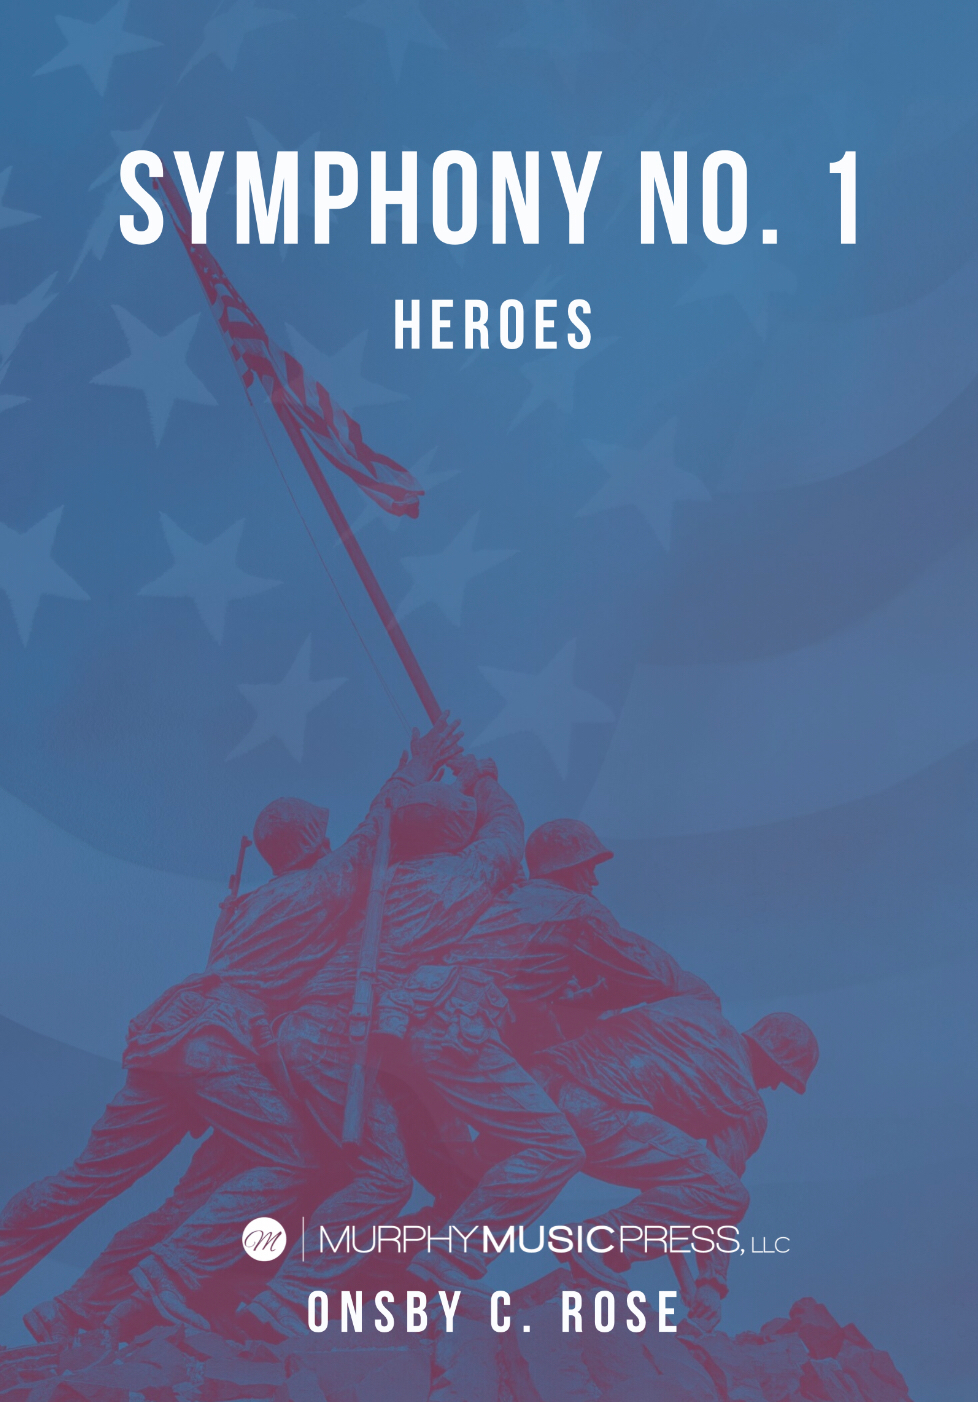 Symphony No. 1: Heroes  by Onsby C. Rose